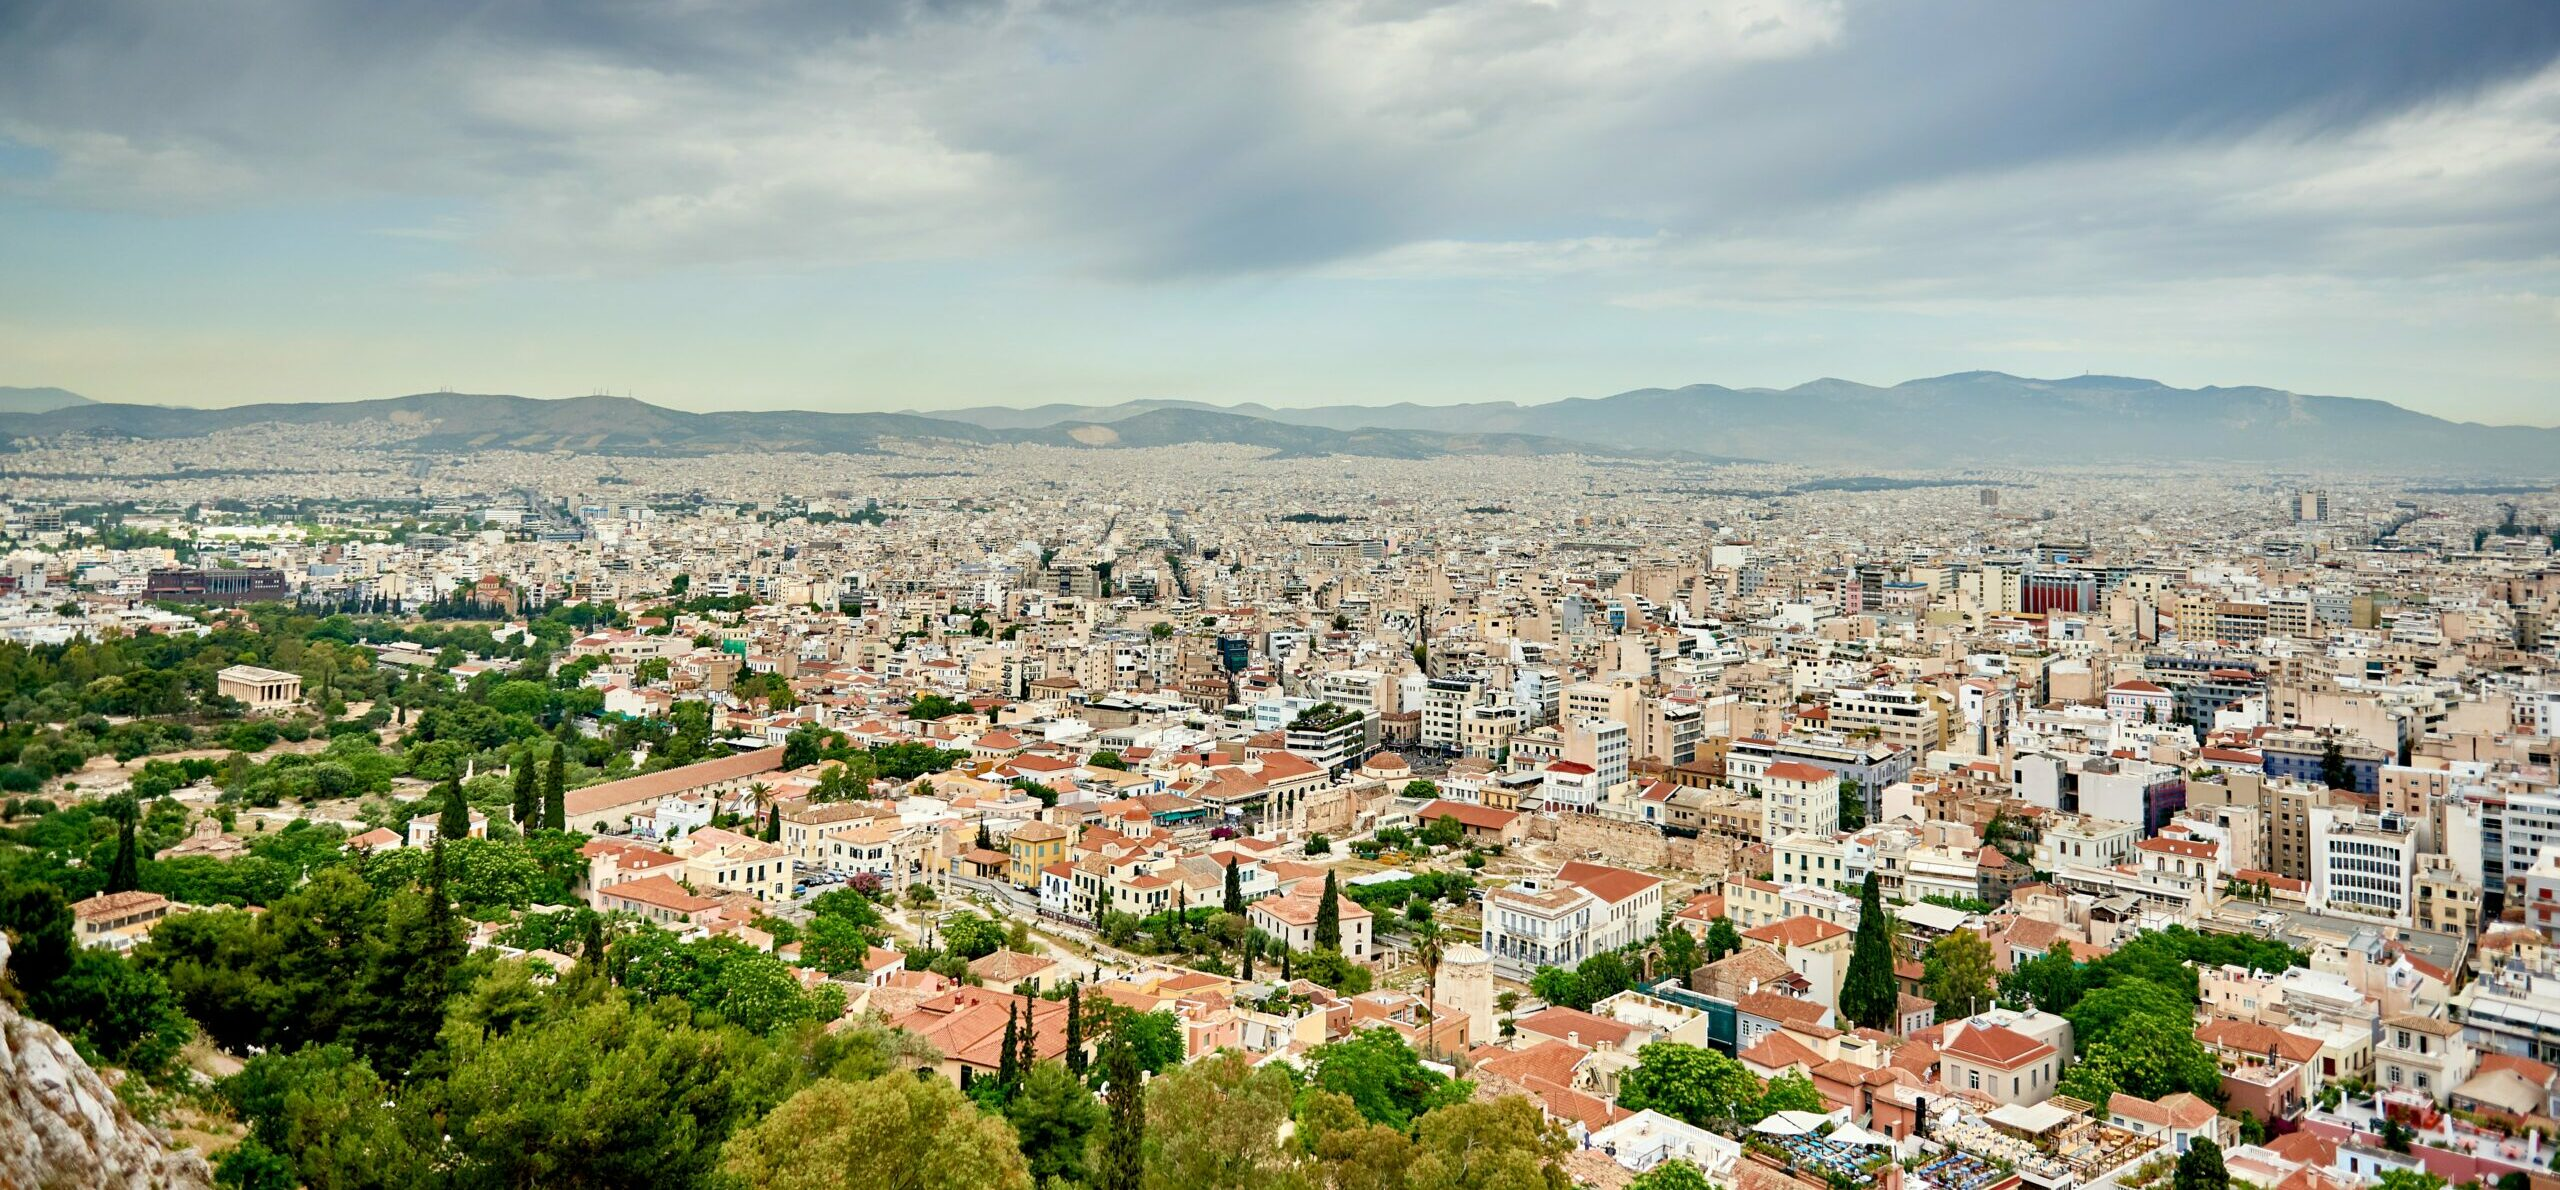 Five districts in Athens that few know exist